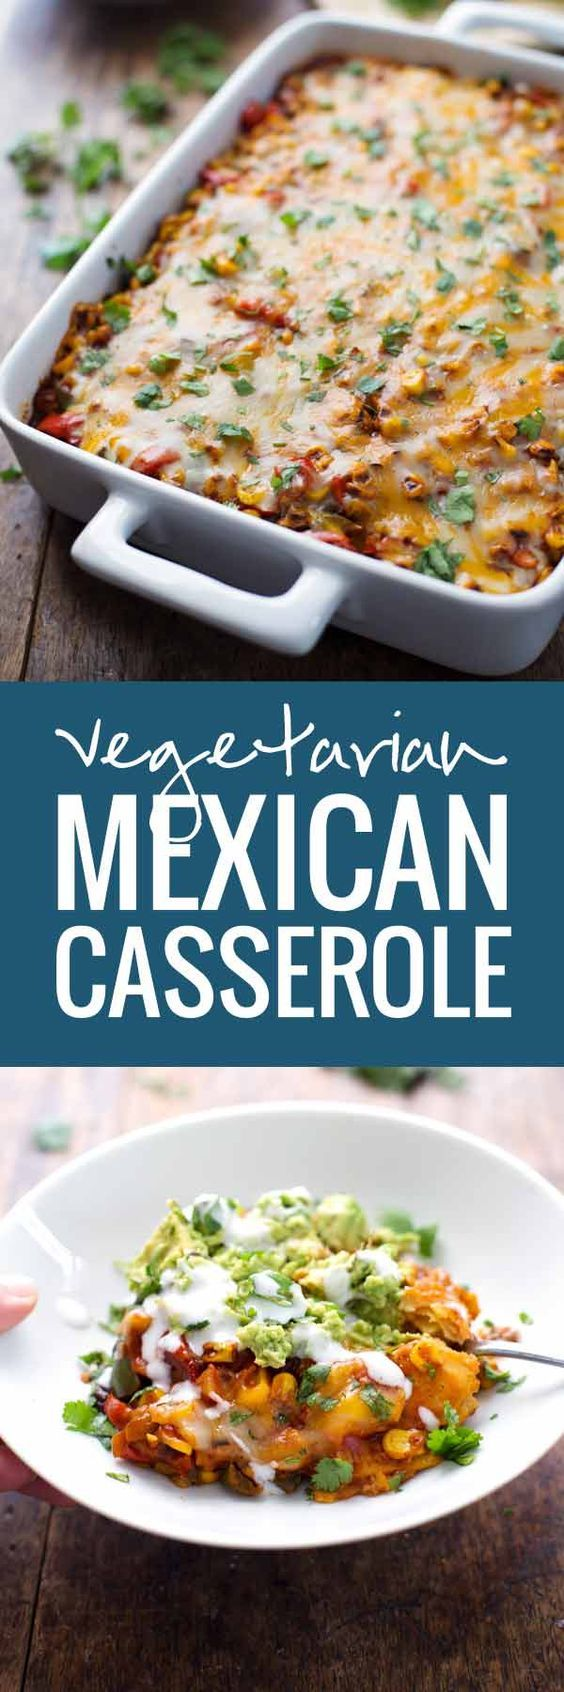 Healthy Mexican Casserole with Roasted Corn and Peppers - A delicious Mexican casserole loaded with cheese and vegetables   pinchofyum.com